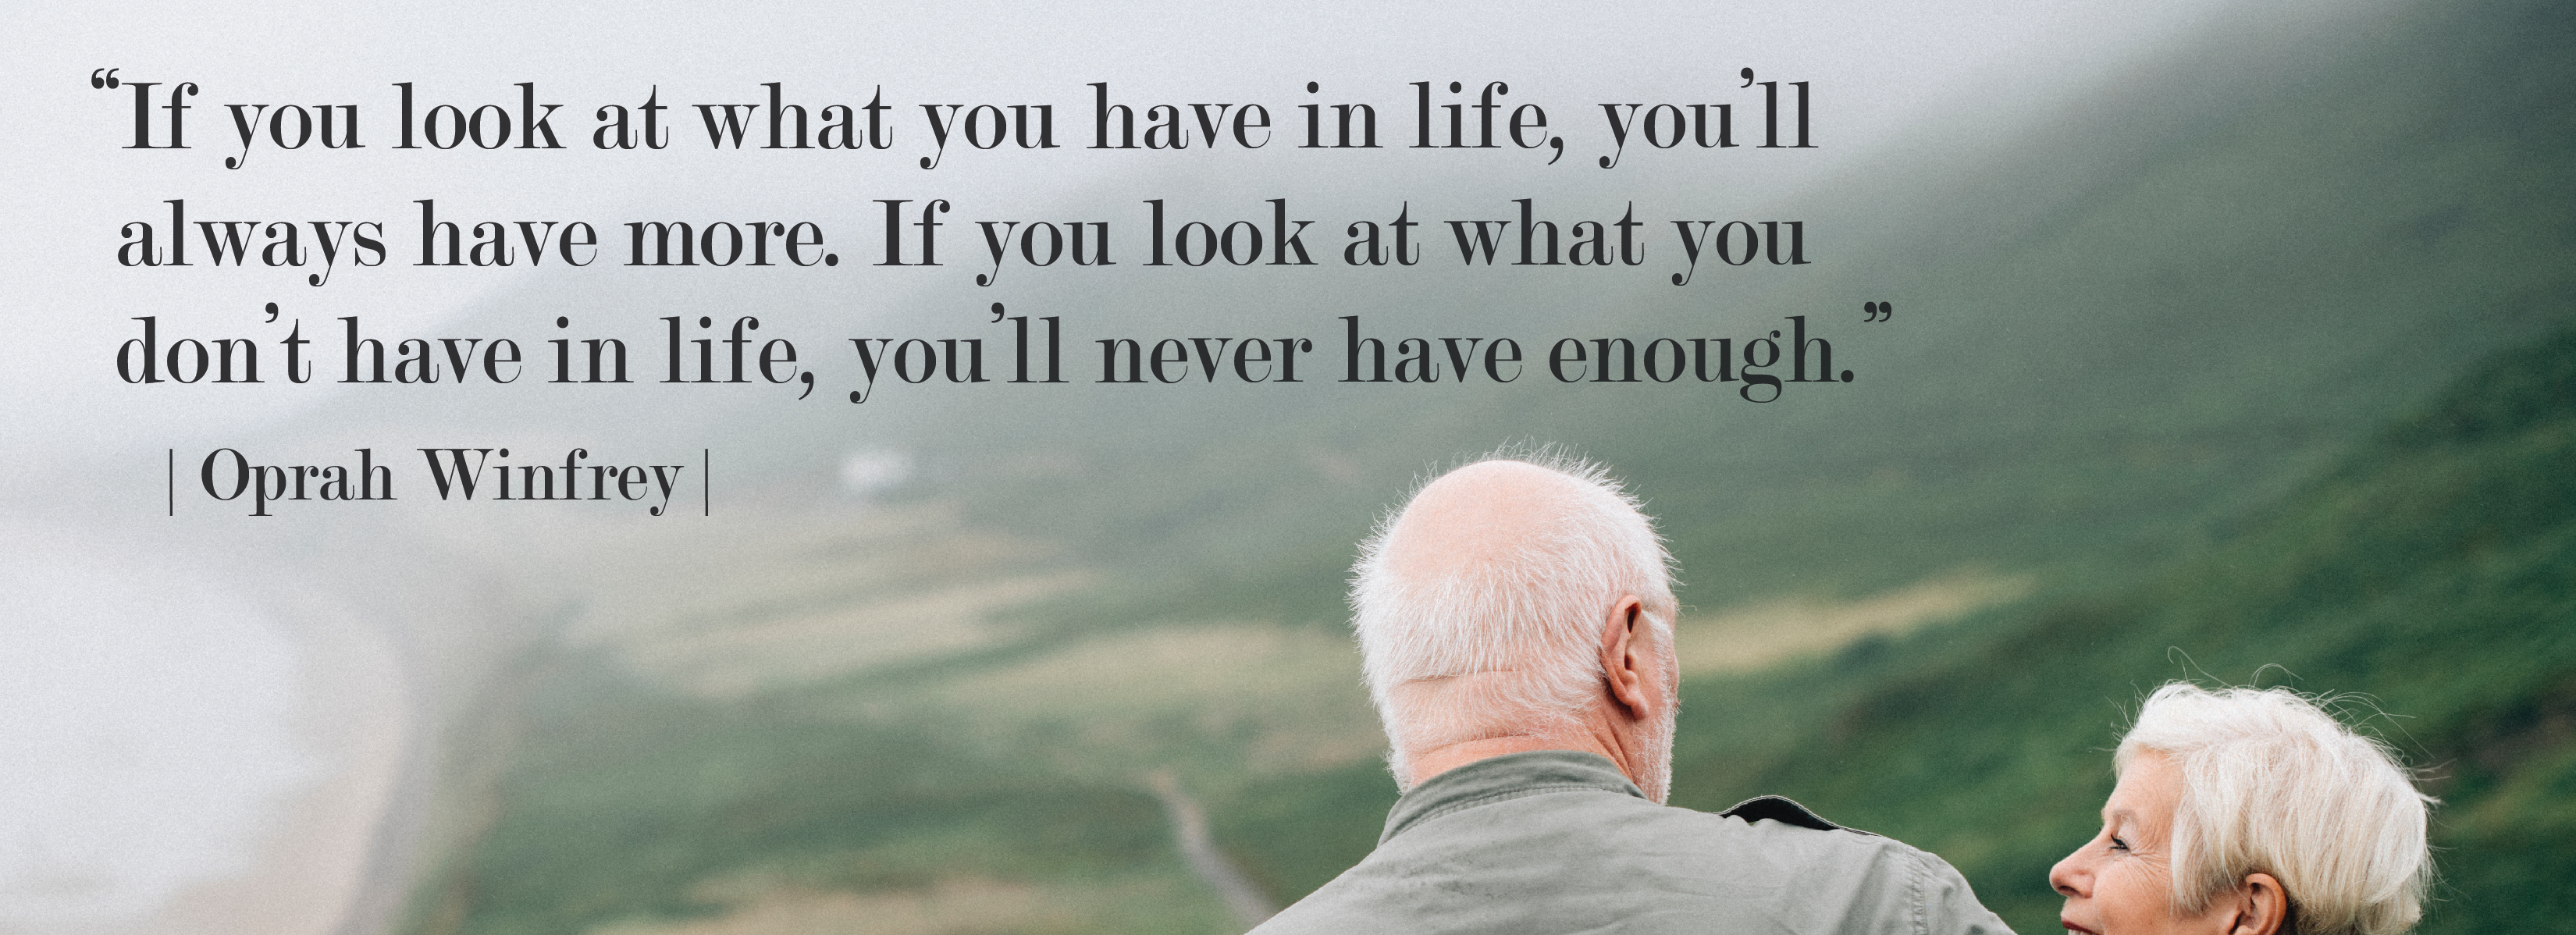 Look at what you have in life